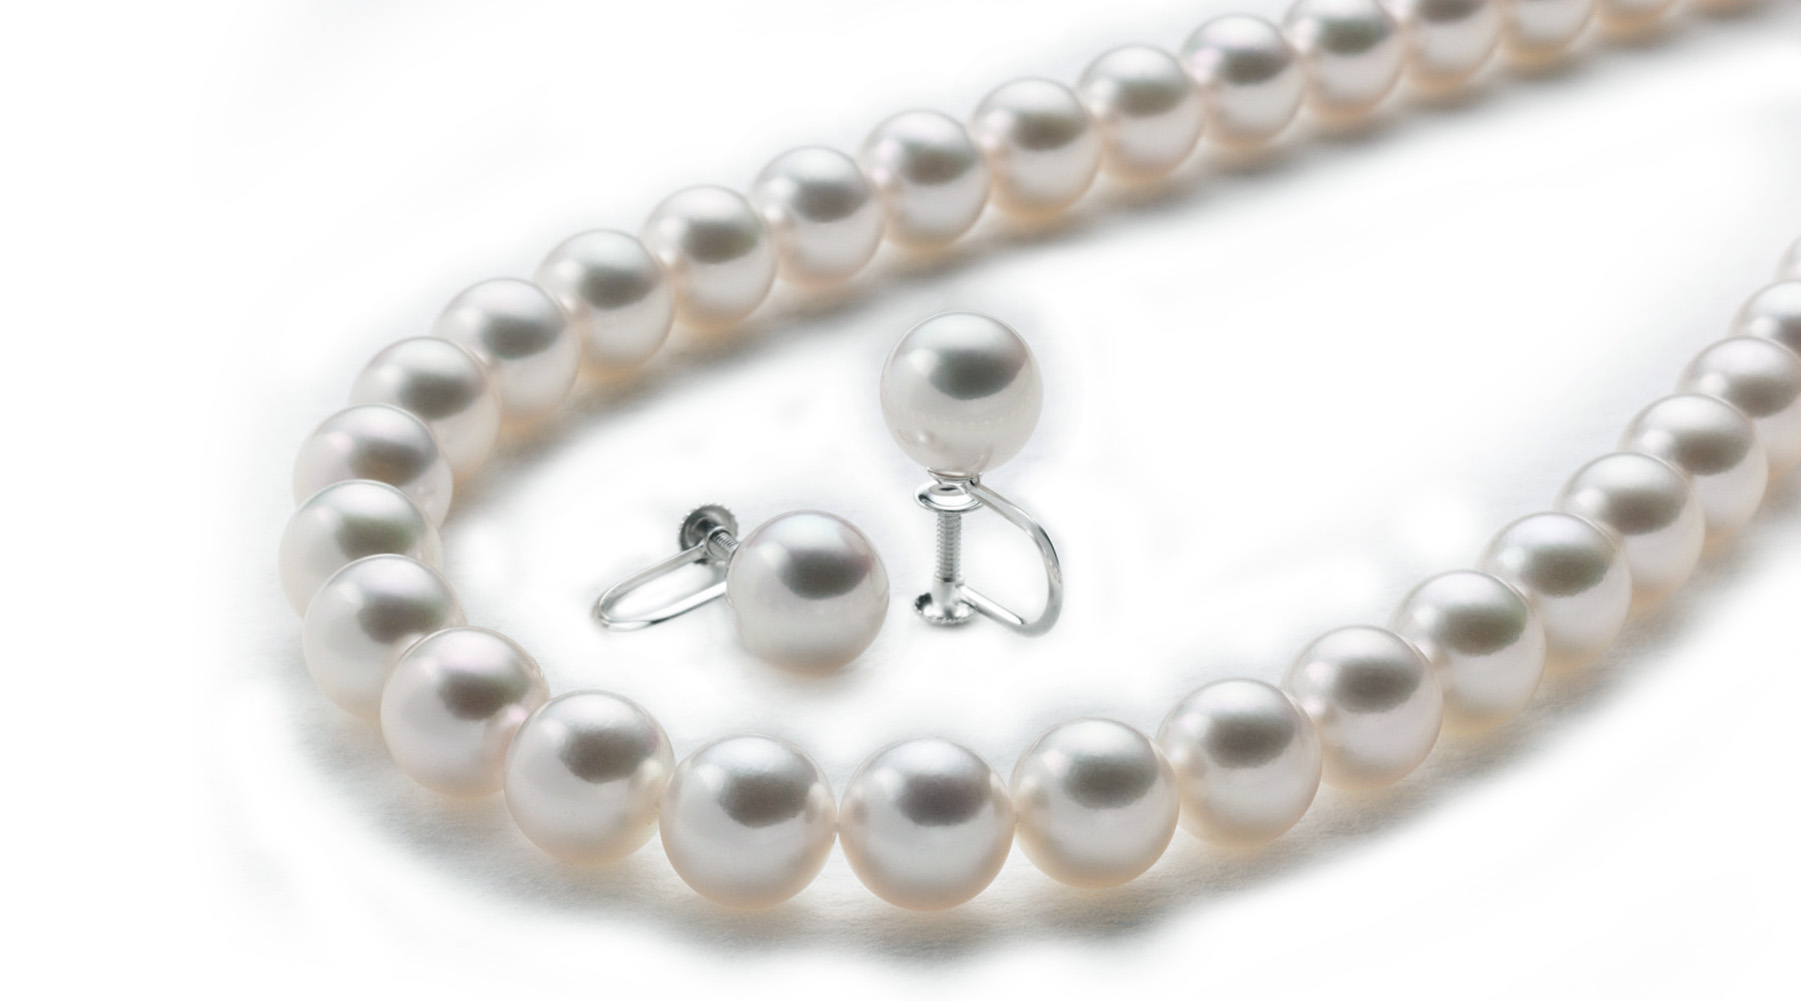 necklace- Pearl-achainnecklace- flowerPearl-320